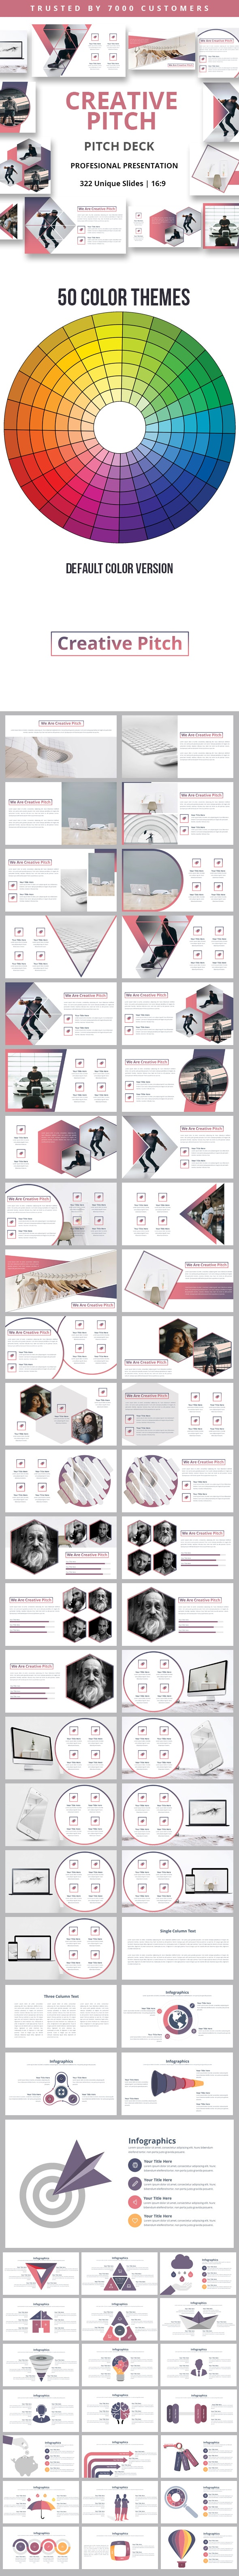 Creative Pitch Google Slides Template - Google Slides Presentation Templates